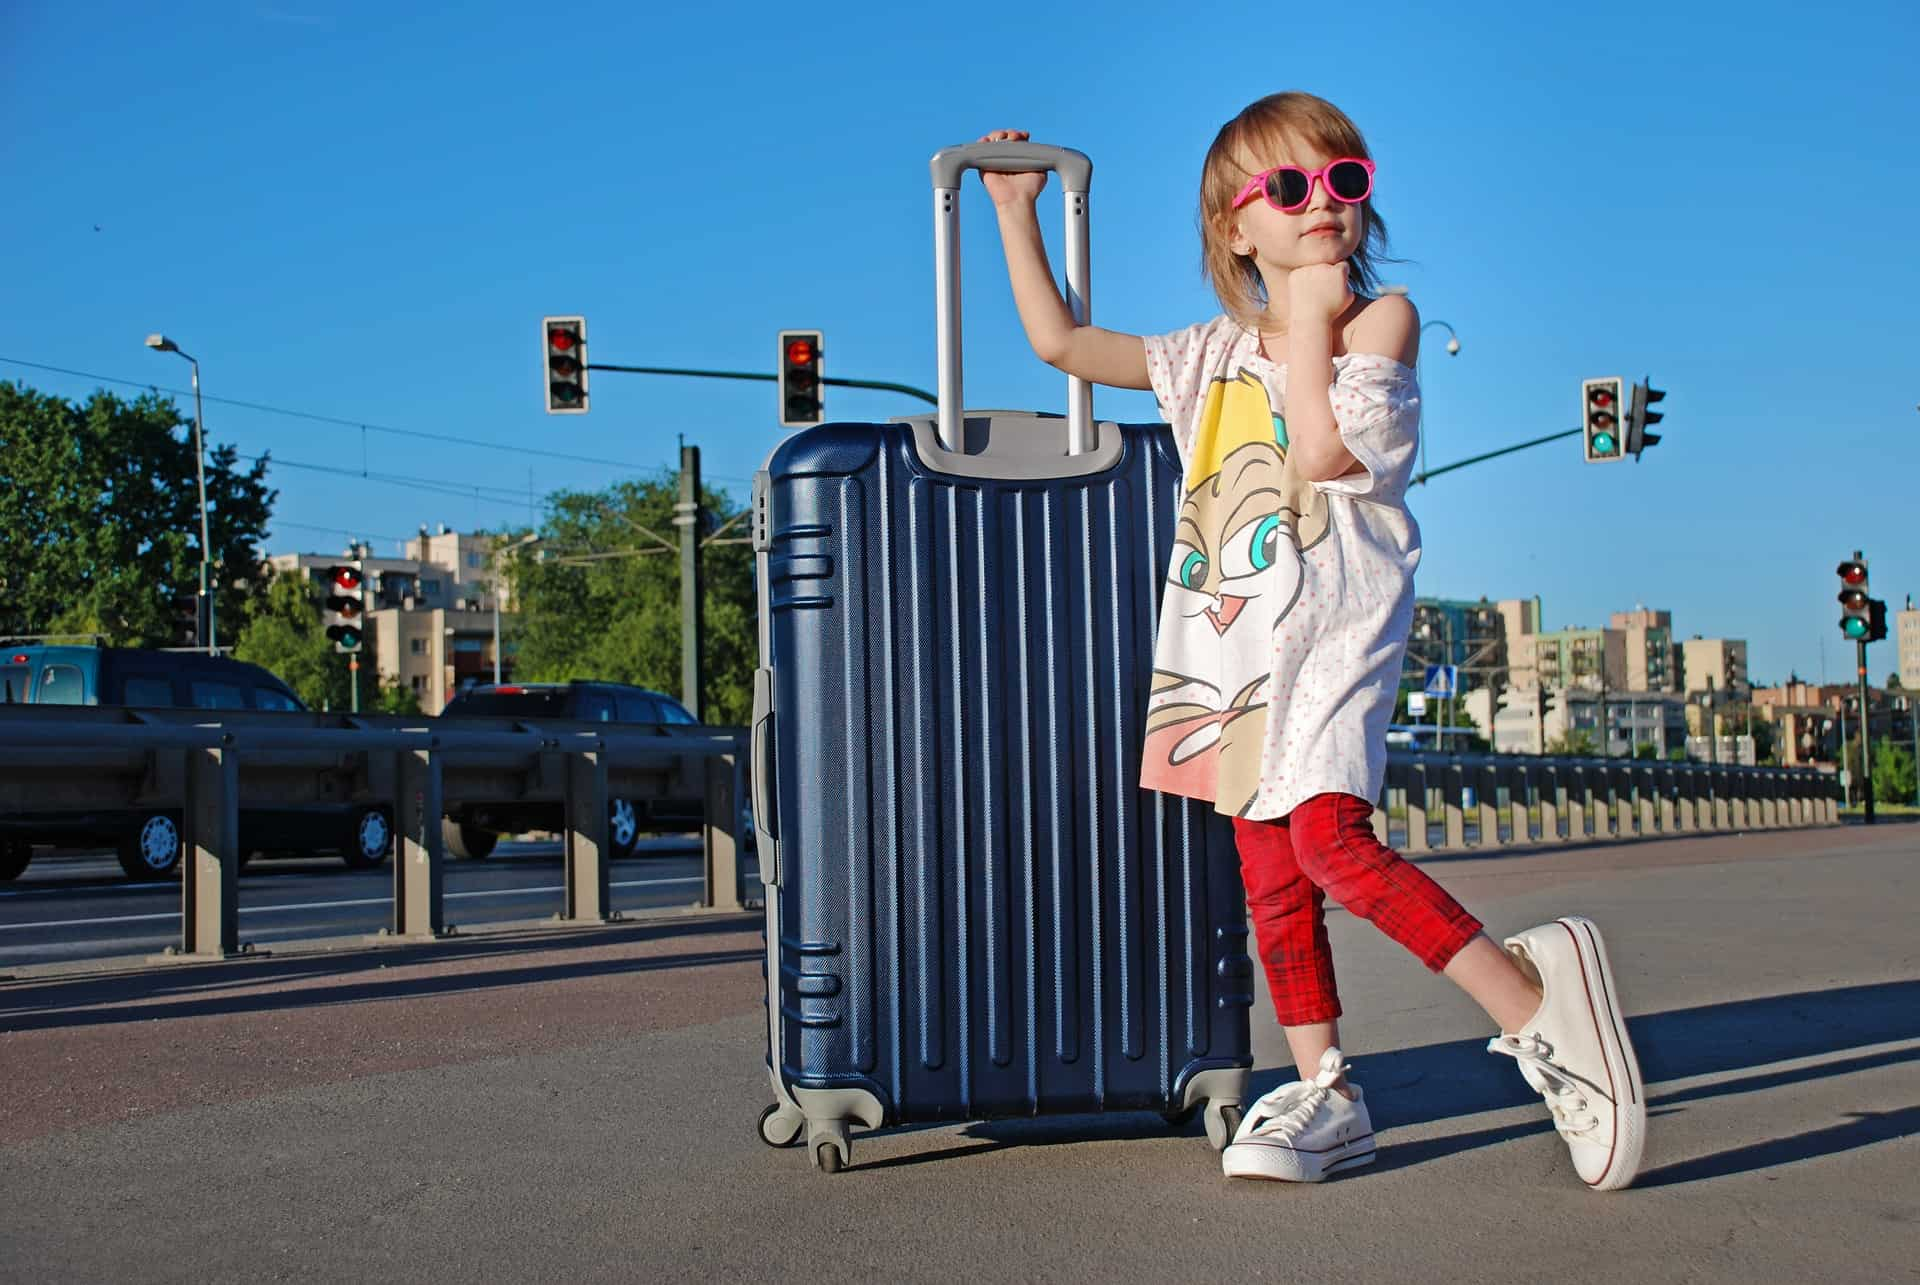 What is the best suitcase brand? What is best suitcase size? Find out below!